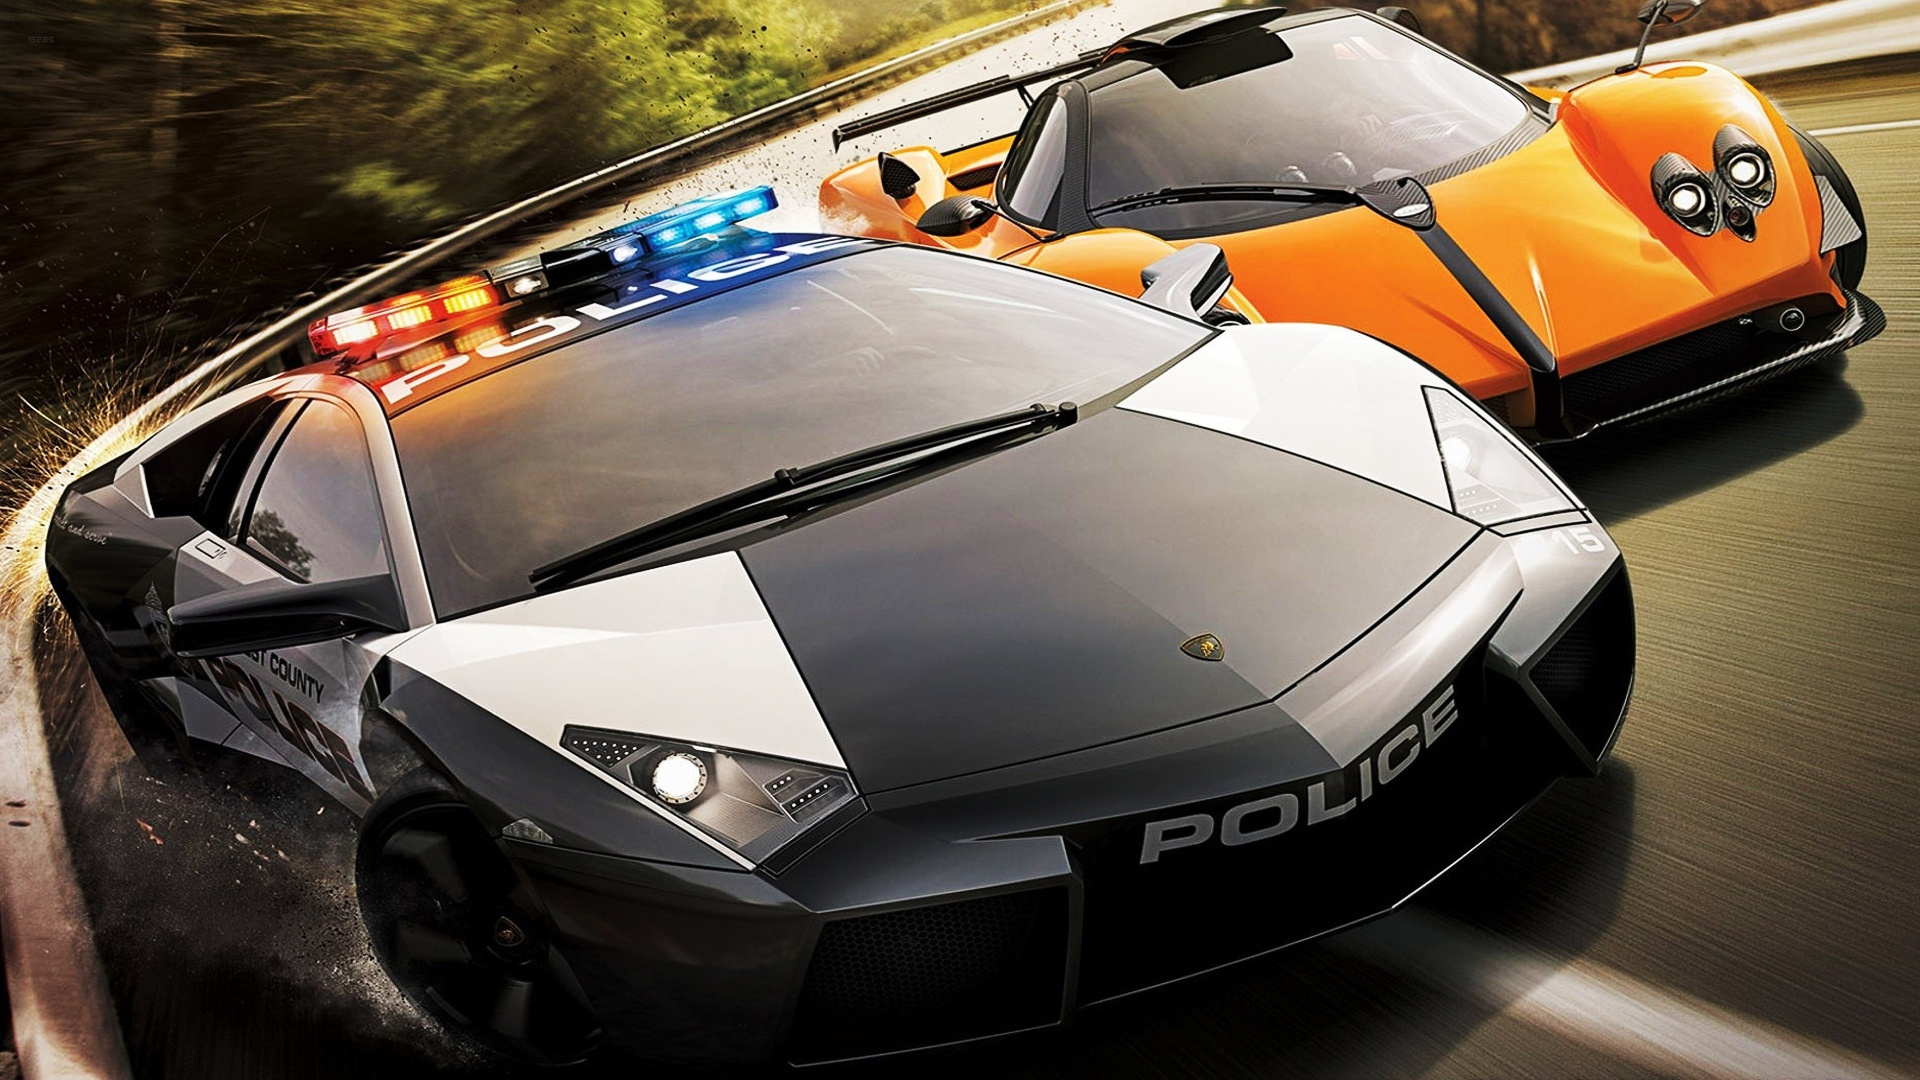 Wallpaper download cars and bikes free - Download Free Bikes And Cars Desktop Wallpapers Screen Savers